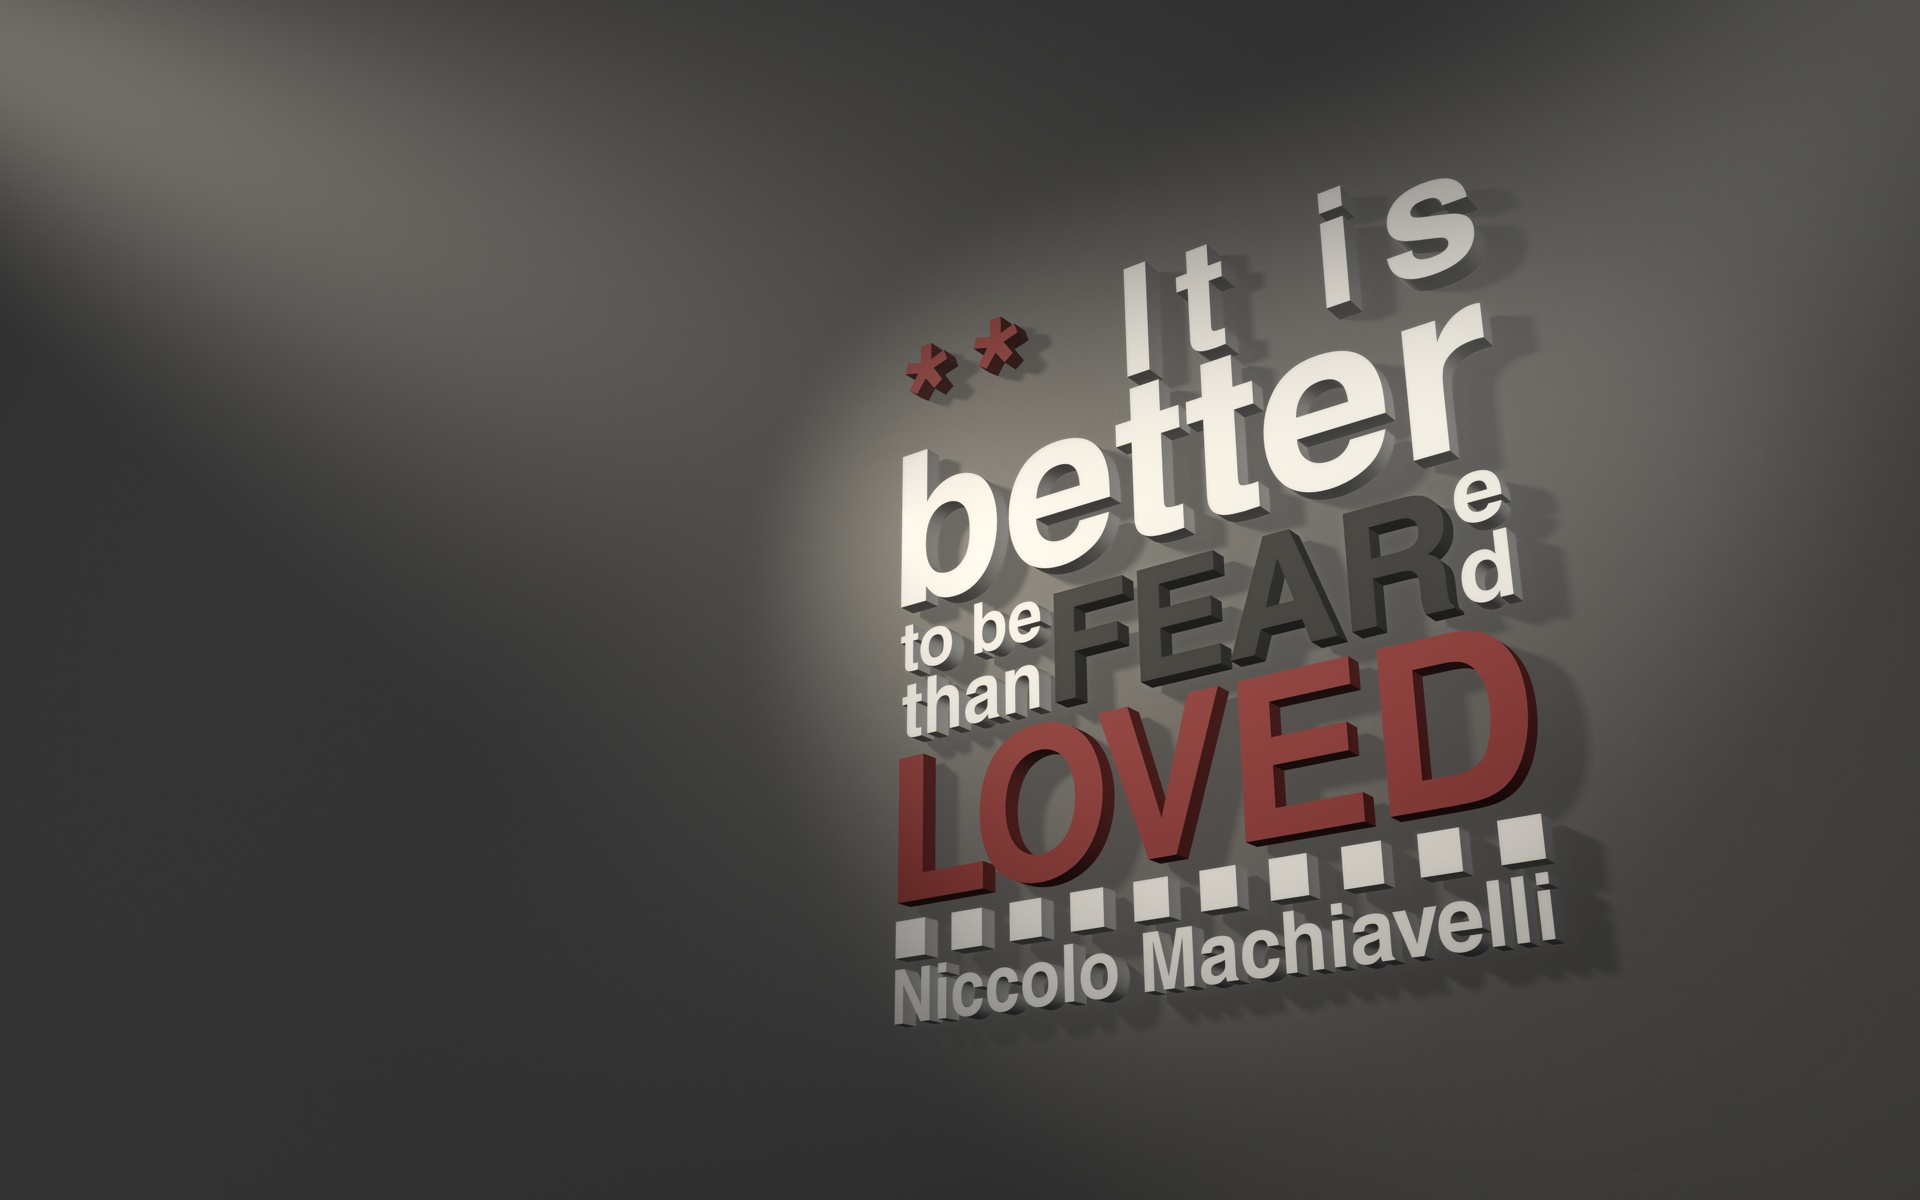 niccolo machiavelli quote by crg on niccolo machiavelli quote by cr8g niccolo machiavelli quote by cr8g